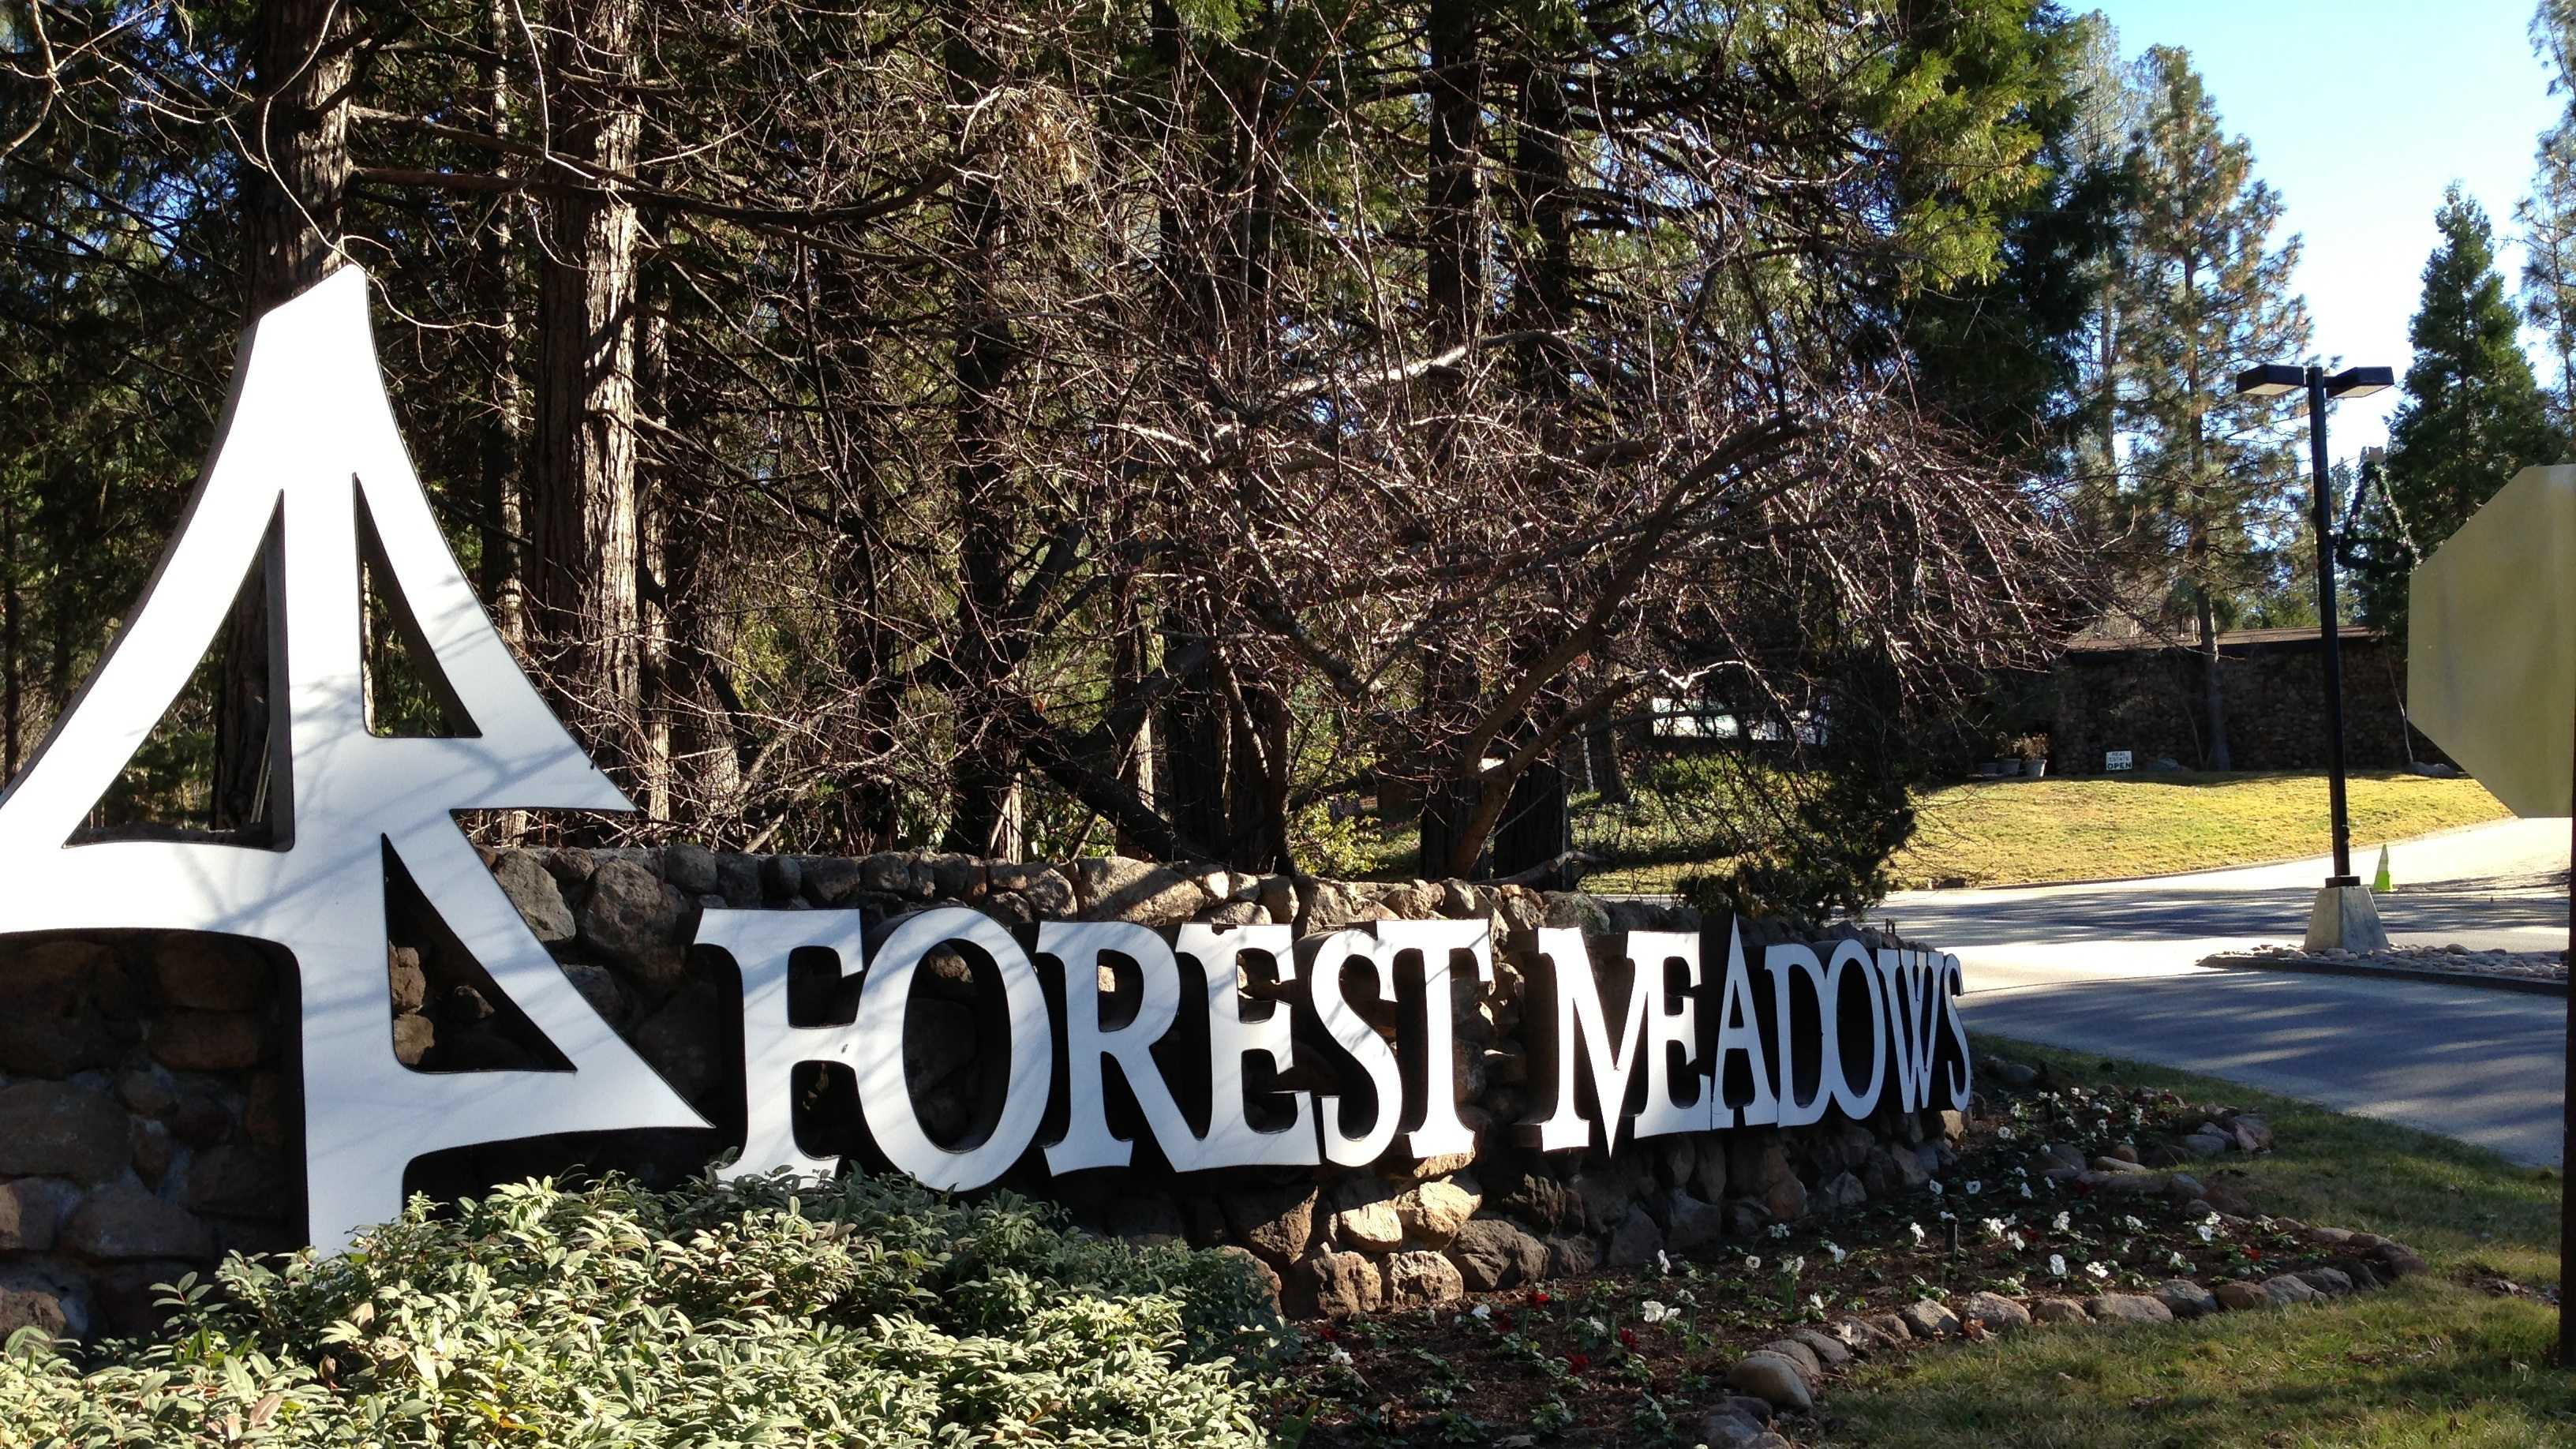 Forest Meadows community